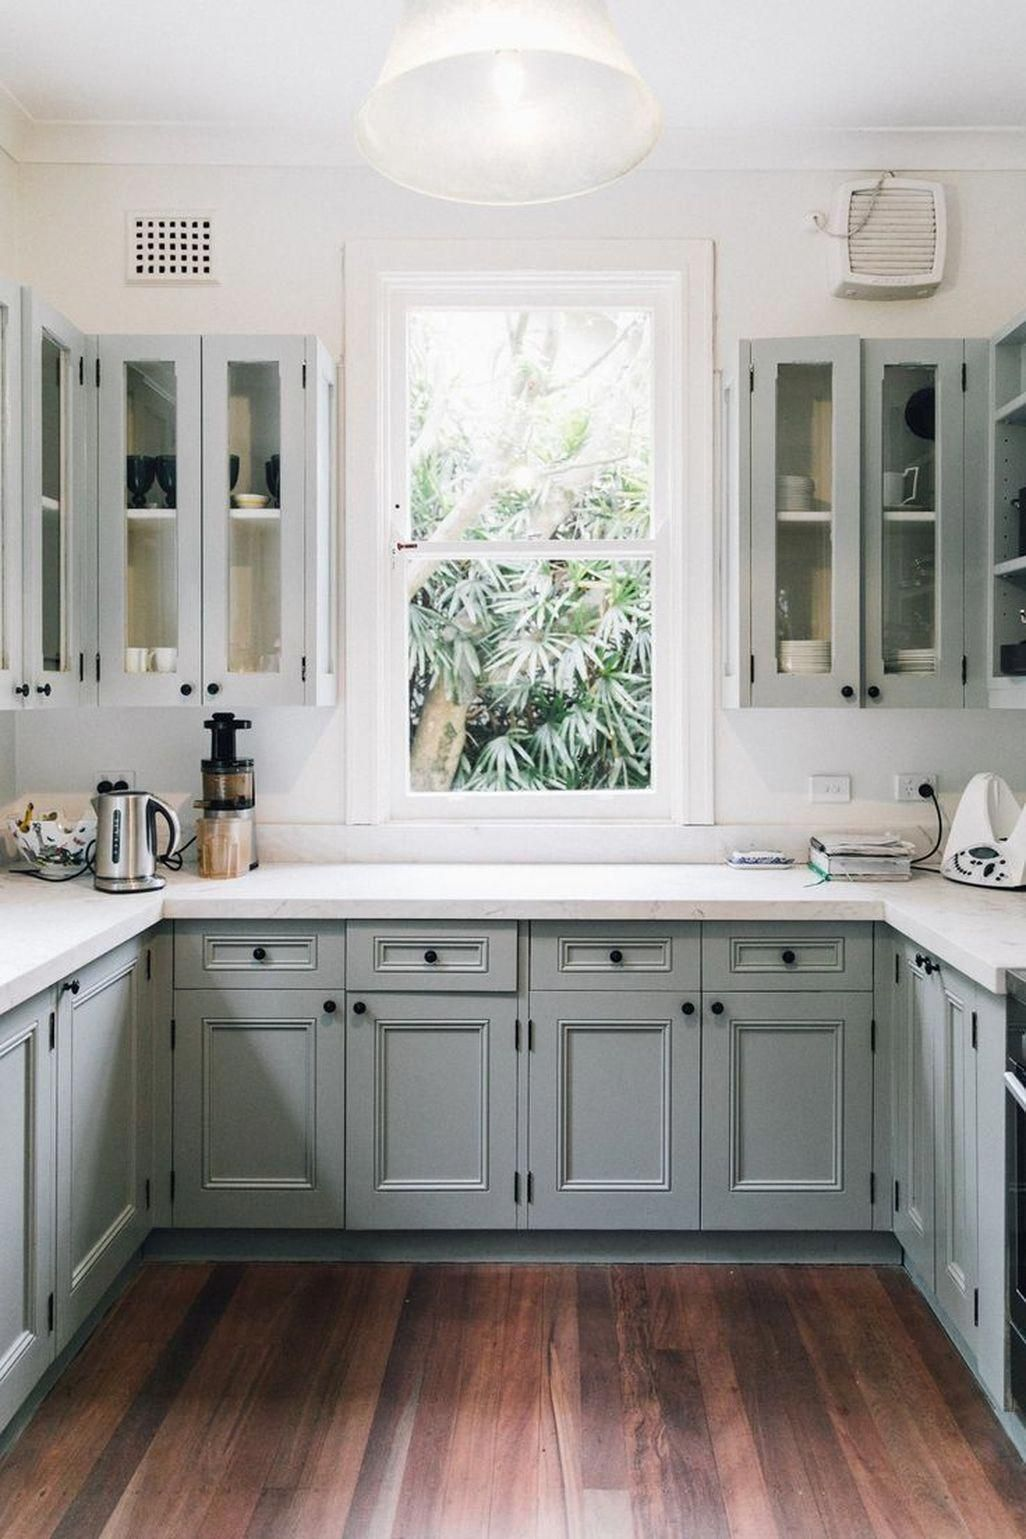 Best Ways To Remodel Your Kitchen On A Budget Kitchen Renovation